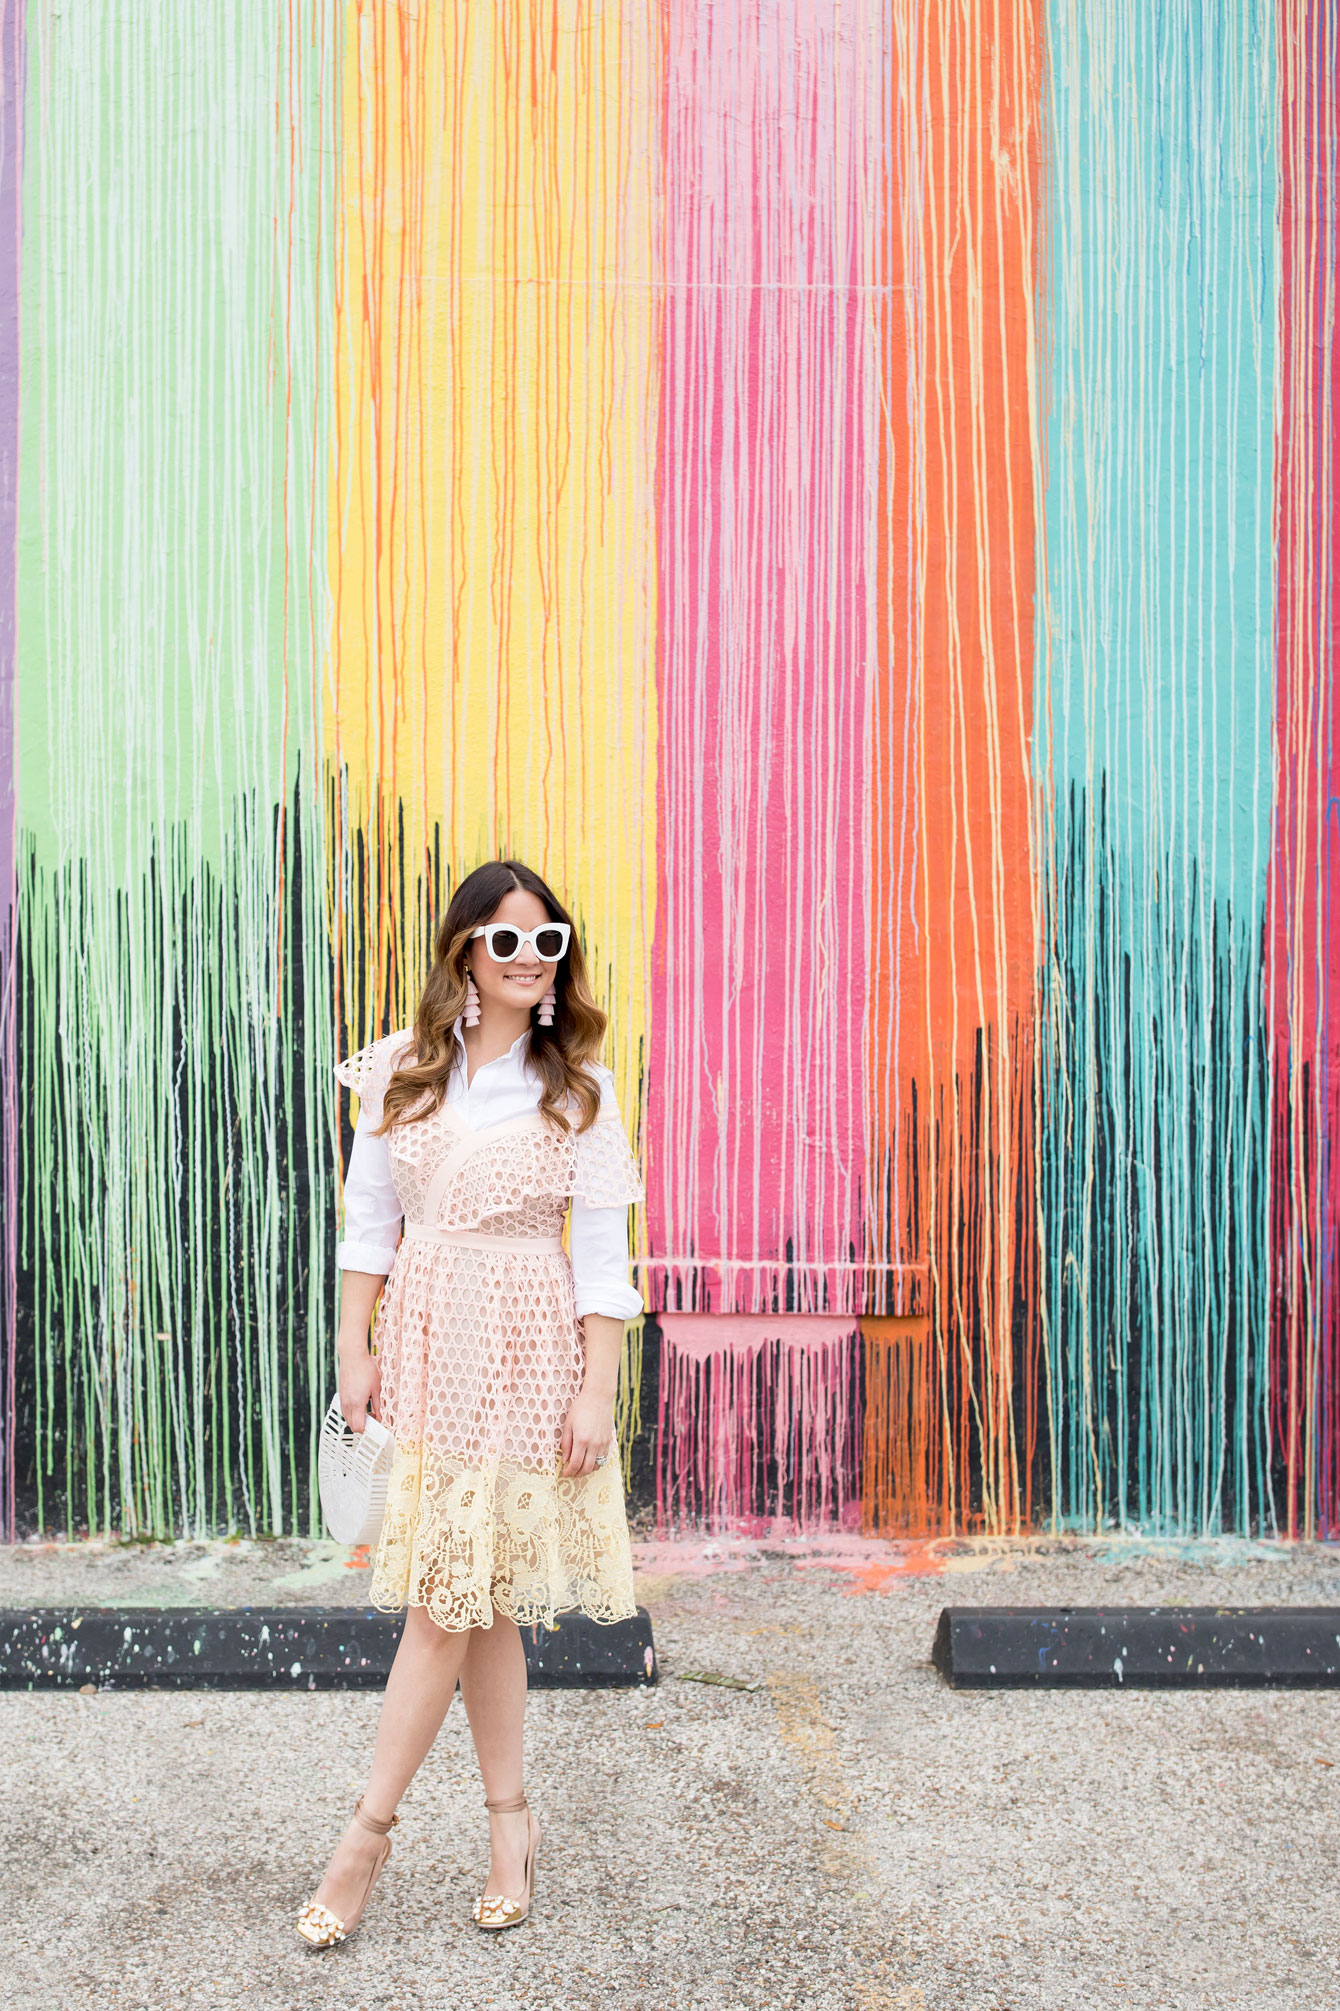 Dripping Rainbow Paint Mural Houston